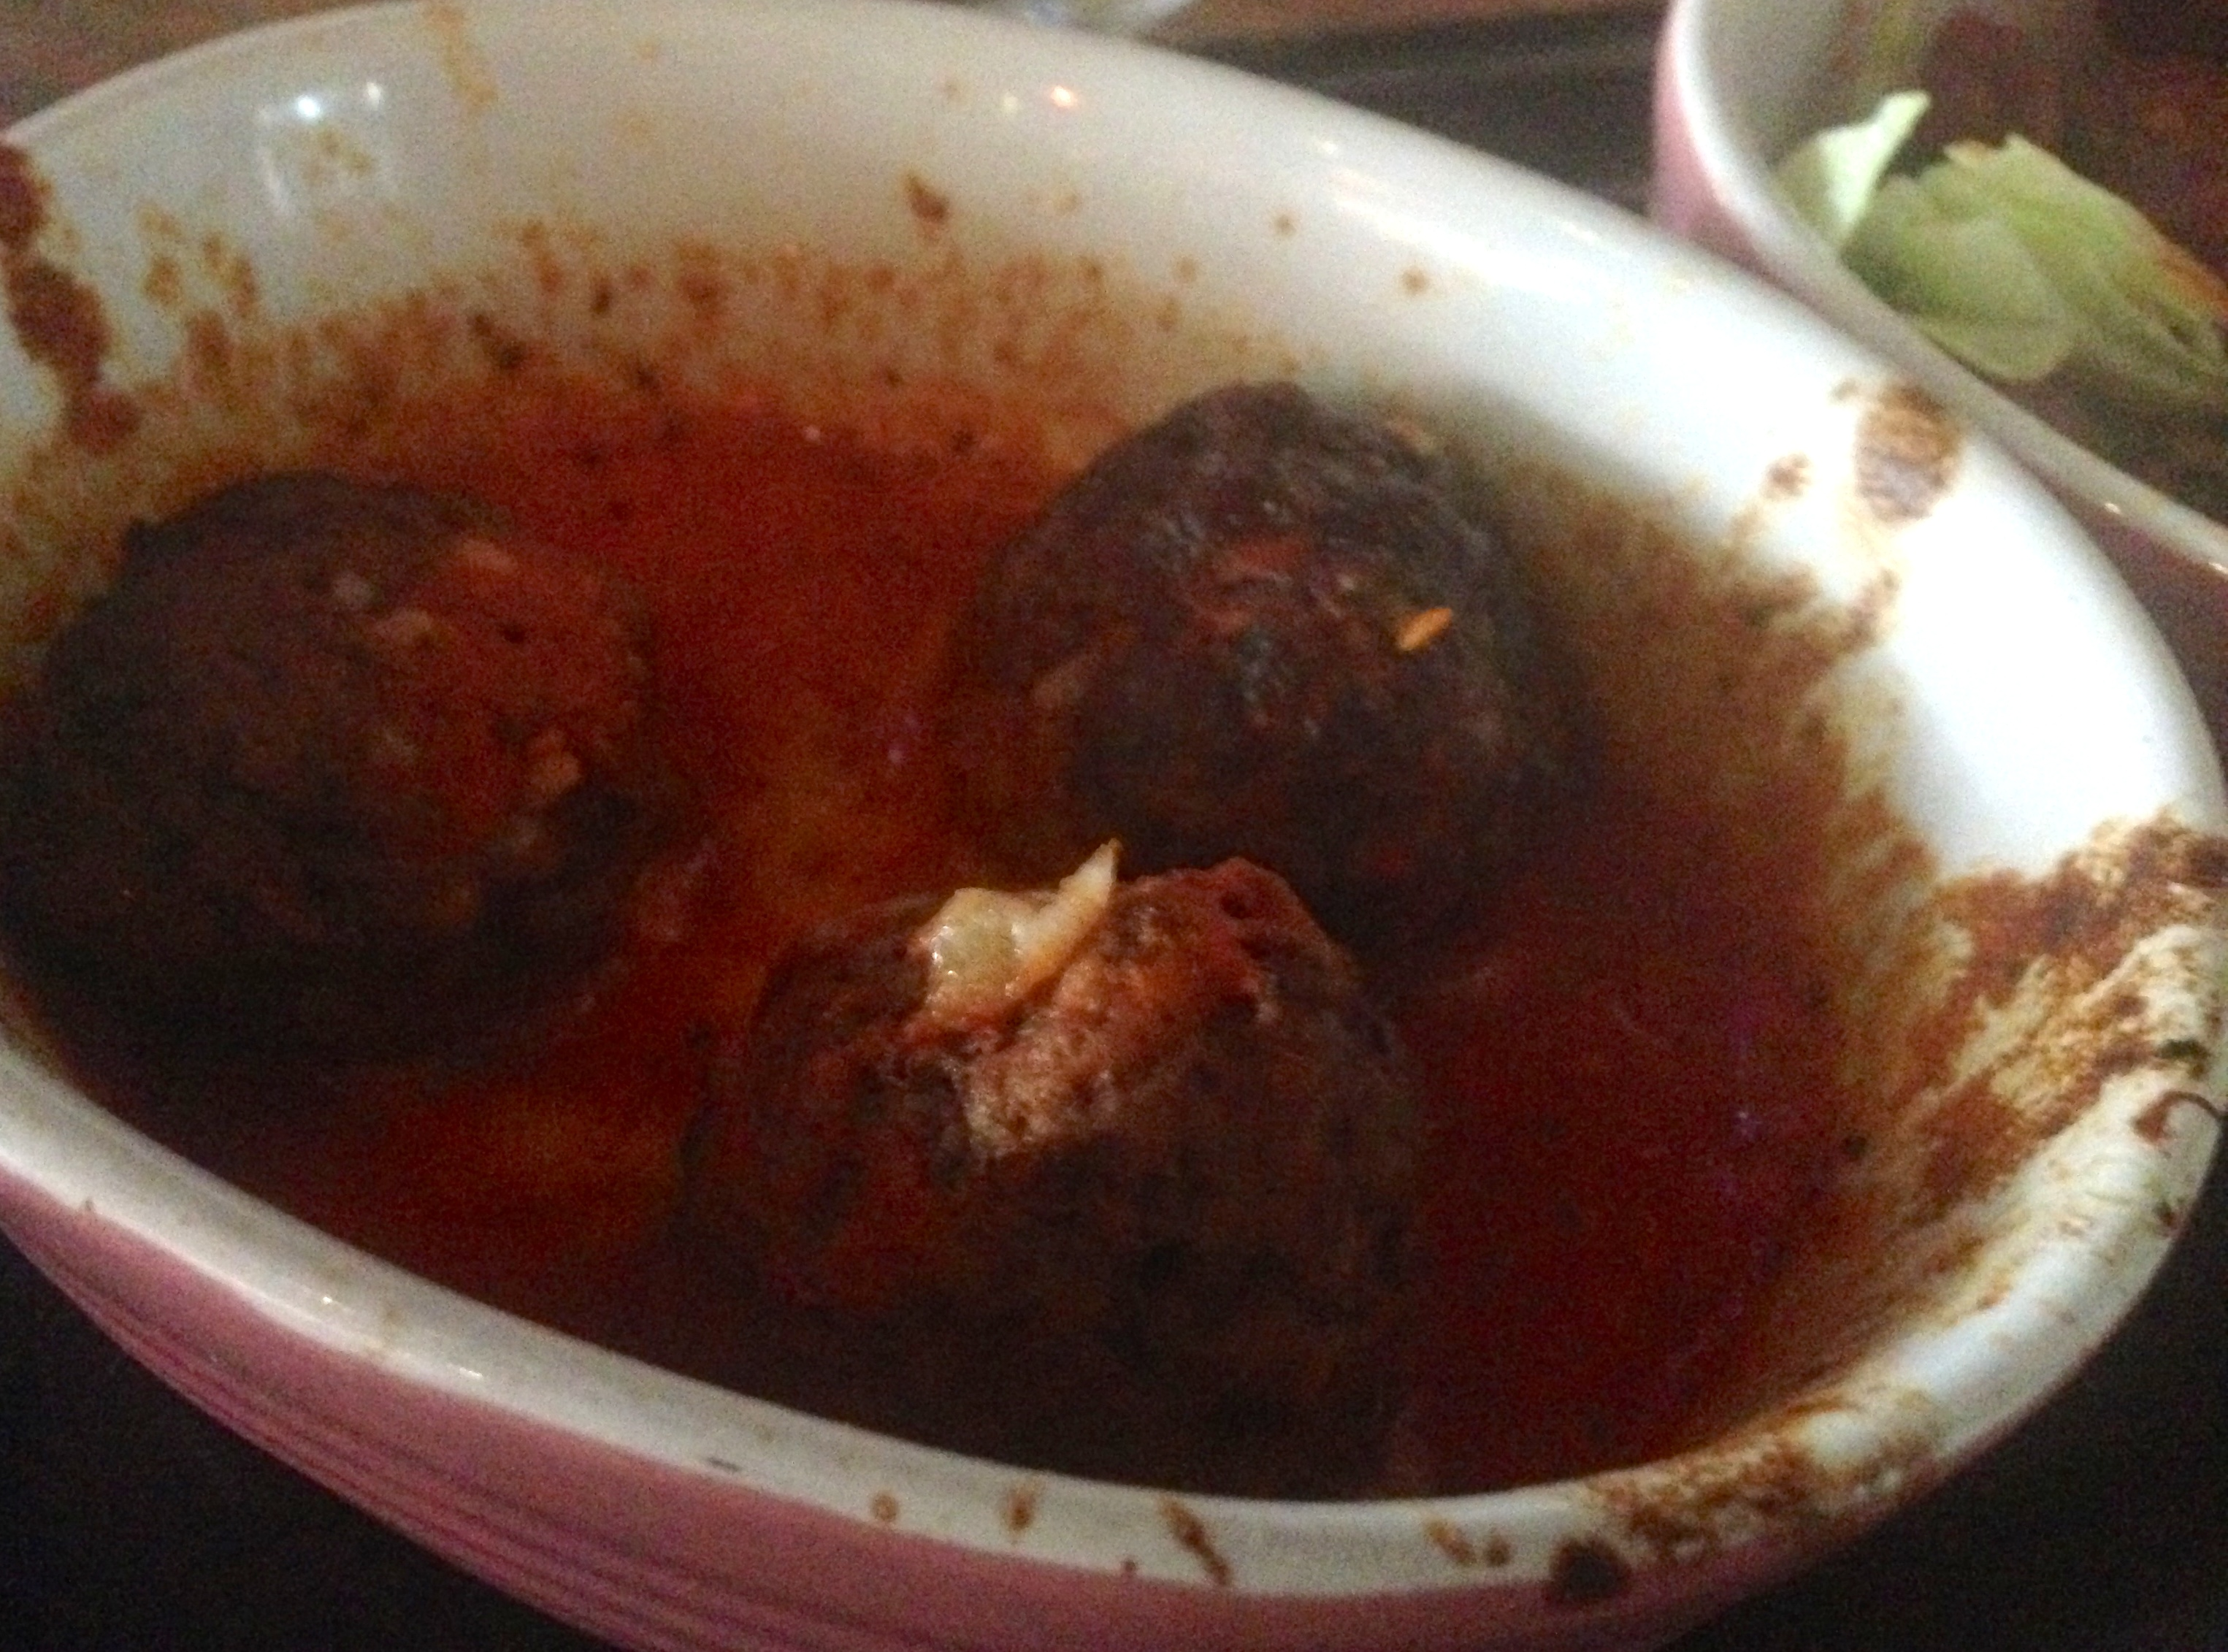 sad meatballs at salsa cafe